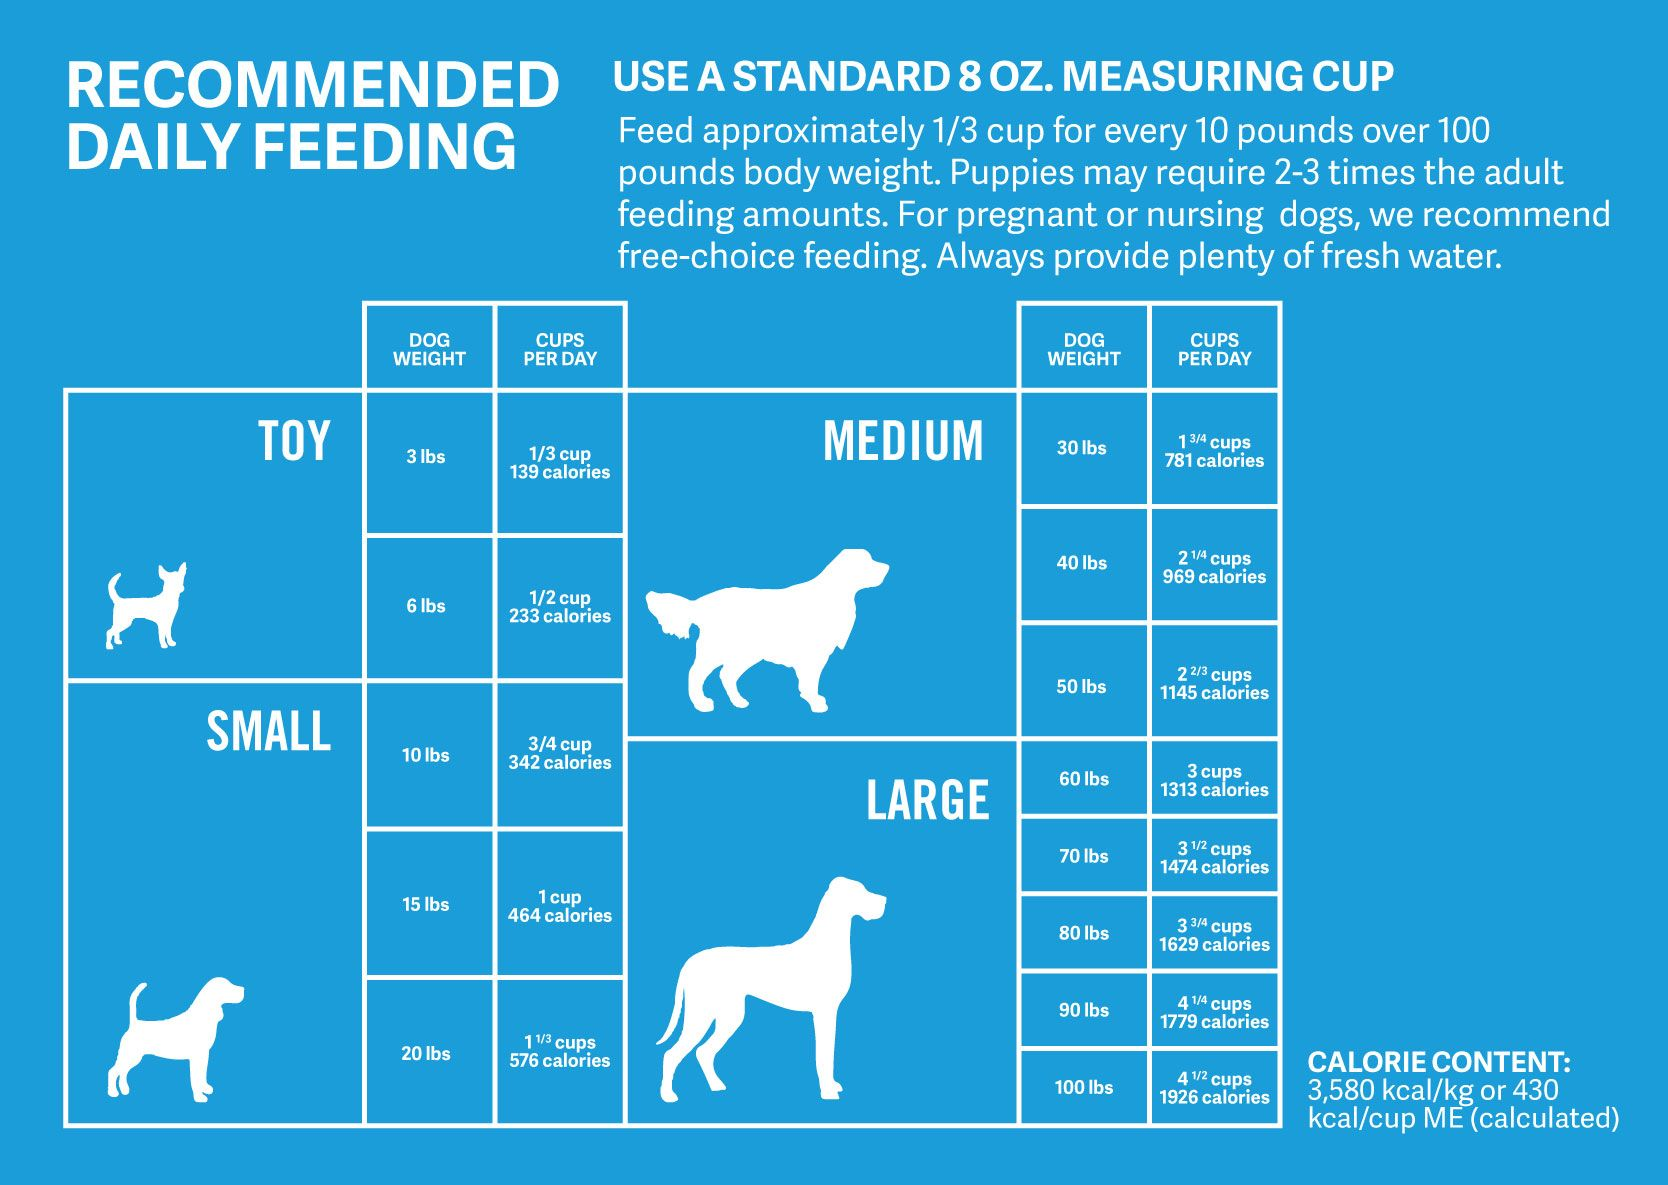 how much to feed a puppy per day how long puppy food how often to give puppy bully sticks how long should a puppy be on puppy food how many times does a puppy eat how much should a german shepherd puppy eat how much should a german shepherd eat how much to feed a 4 month old puppy how long do puppies need milk how to get my puppy to eat how much chicken and rice to feed puppy how much to feed a 10 week old puppy how much food do i feed my puppy how often to feed 8 week old puppy how many ml of milk should a newborn puppy drink how much to feed a 3 month old puppy how many times should a puppy be fed how much goat milk to give a puppy how long does a puppy eat puppy food how many meals a day for a puppy how much should a 4 month old puppy eat how often should you feed your puppy how much should a 6 week old puppy eat how much to feed a labrador puppy how much food to feed your puppy how many times a day does a puppy eat how many times do i feed my puppy how much to feed a puppy based on weight how long do puppies stay on puppy food how much should a 3 month old puppy eat how much should a german shepherd eat a day how many times a day do puppies eat how to get your puppy to eat how long should a dog be on puppy food how much should a 12 week old puppy eat how much to feed 6 month old puppy how much food should a puppy get how much should i feed a puppy how long do i feed my dog puppy food how much dog food for puppy how long to give puppy food how much dog food should i feed my puppy how much should a 7 week old puppy eat how much to feed a 6 week old puppy how much should i feed my german shepherd puppy how much water should you give a puppy how much to feed a french bulldog puppy how much to feed 9 week old puppy how often should my puppy eat how much food should my 8 week old puppy eat how often should puppies be fed how much should a lab puppy eat how much food should a 4 month old puppy eat how much food should an 8 week old puppy eat how much to feed a 5 month 